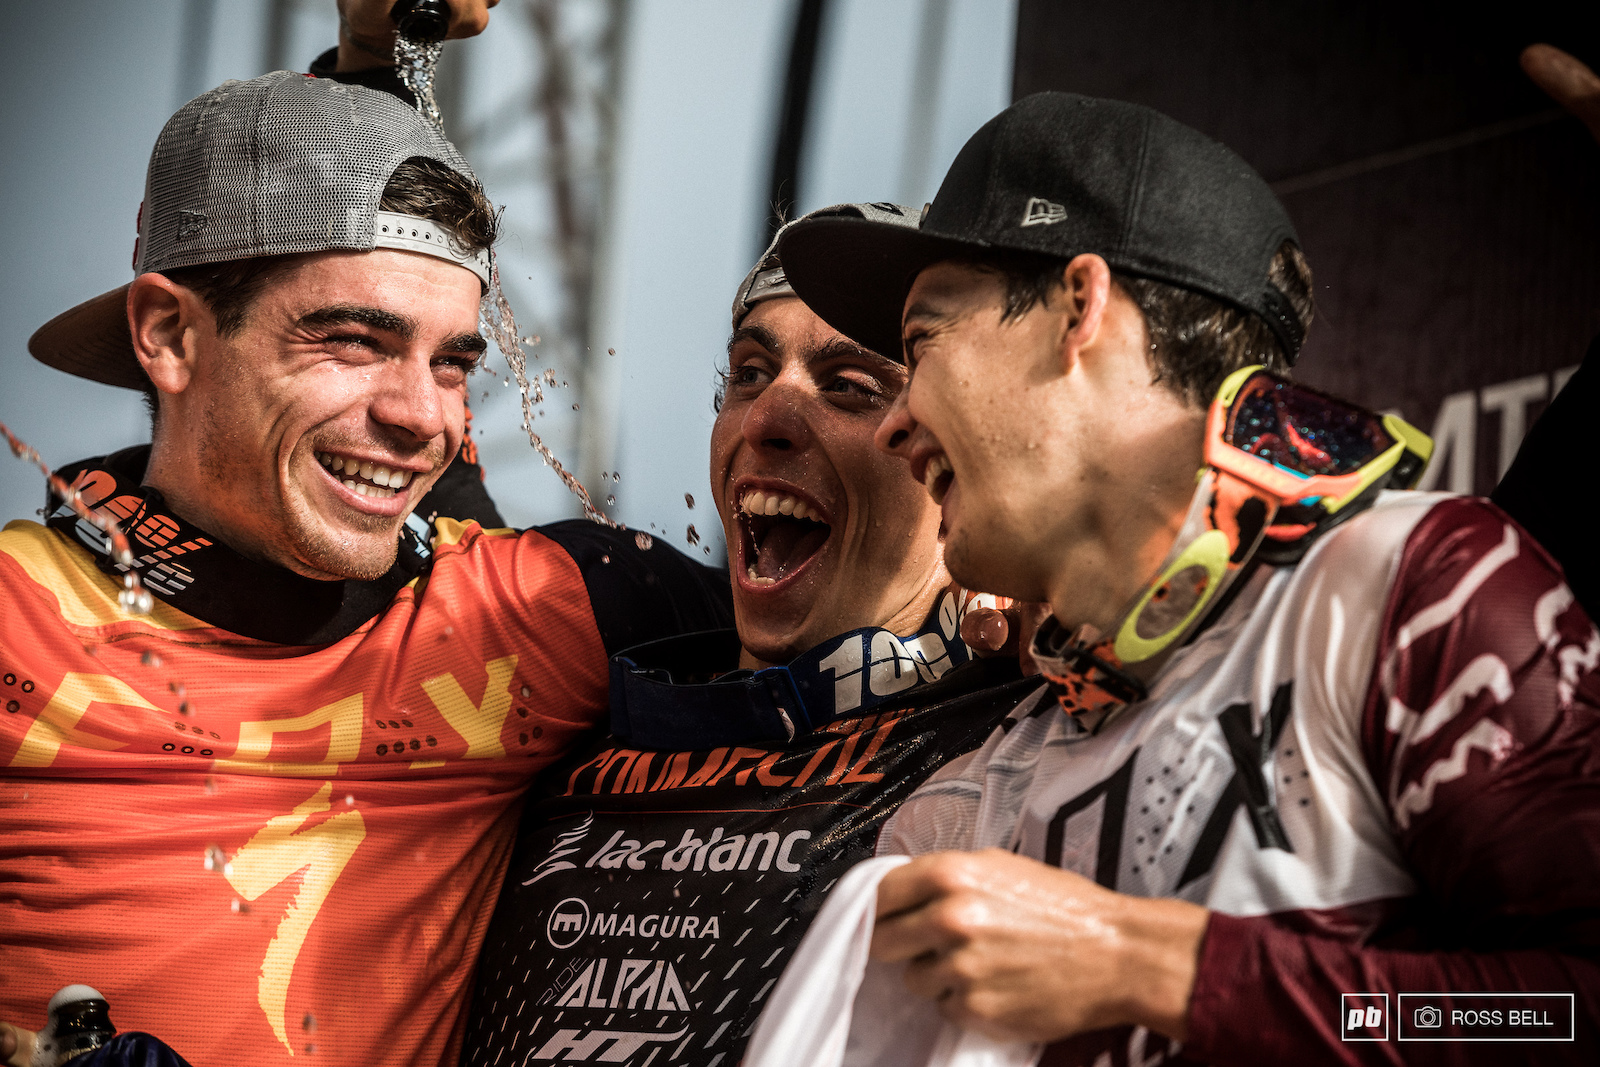 What a day for these three flying Frenchmen to be alongside each other on the podium.